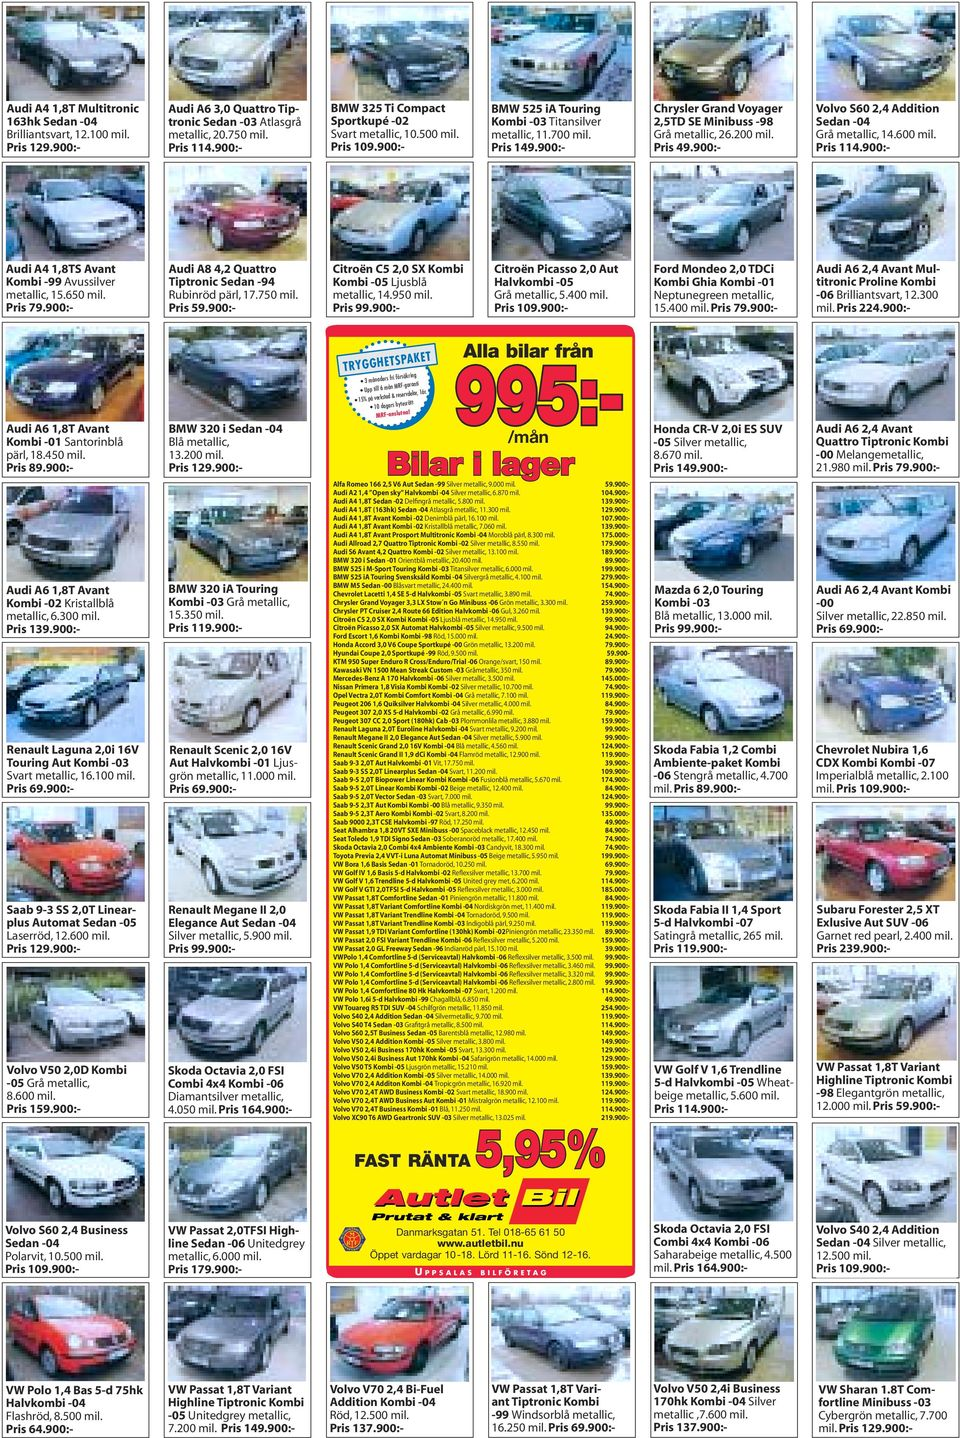 900:- Chrysler Grand Voyager 2,5TD SE Minibuss -98 Grå metallic, 26.200 mil. Pris 49.900:- Volvo S60 2,4 Addition Sedan -04 Grå metallic, 14.600 mil. Pris 114.